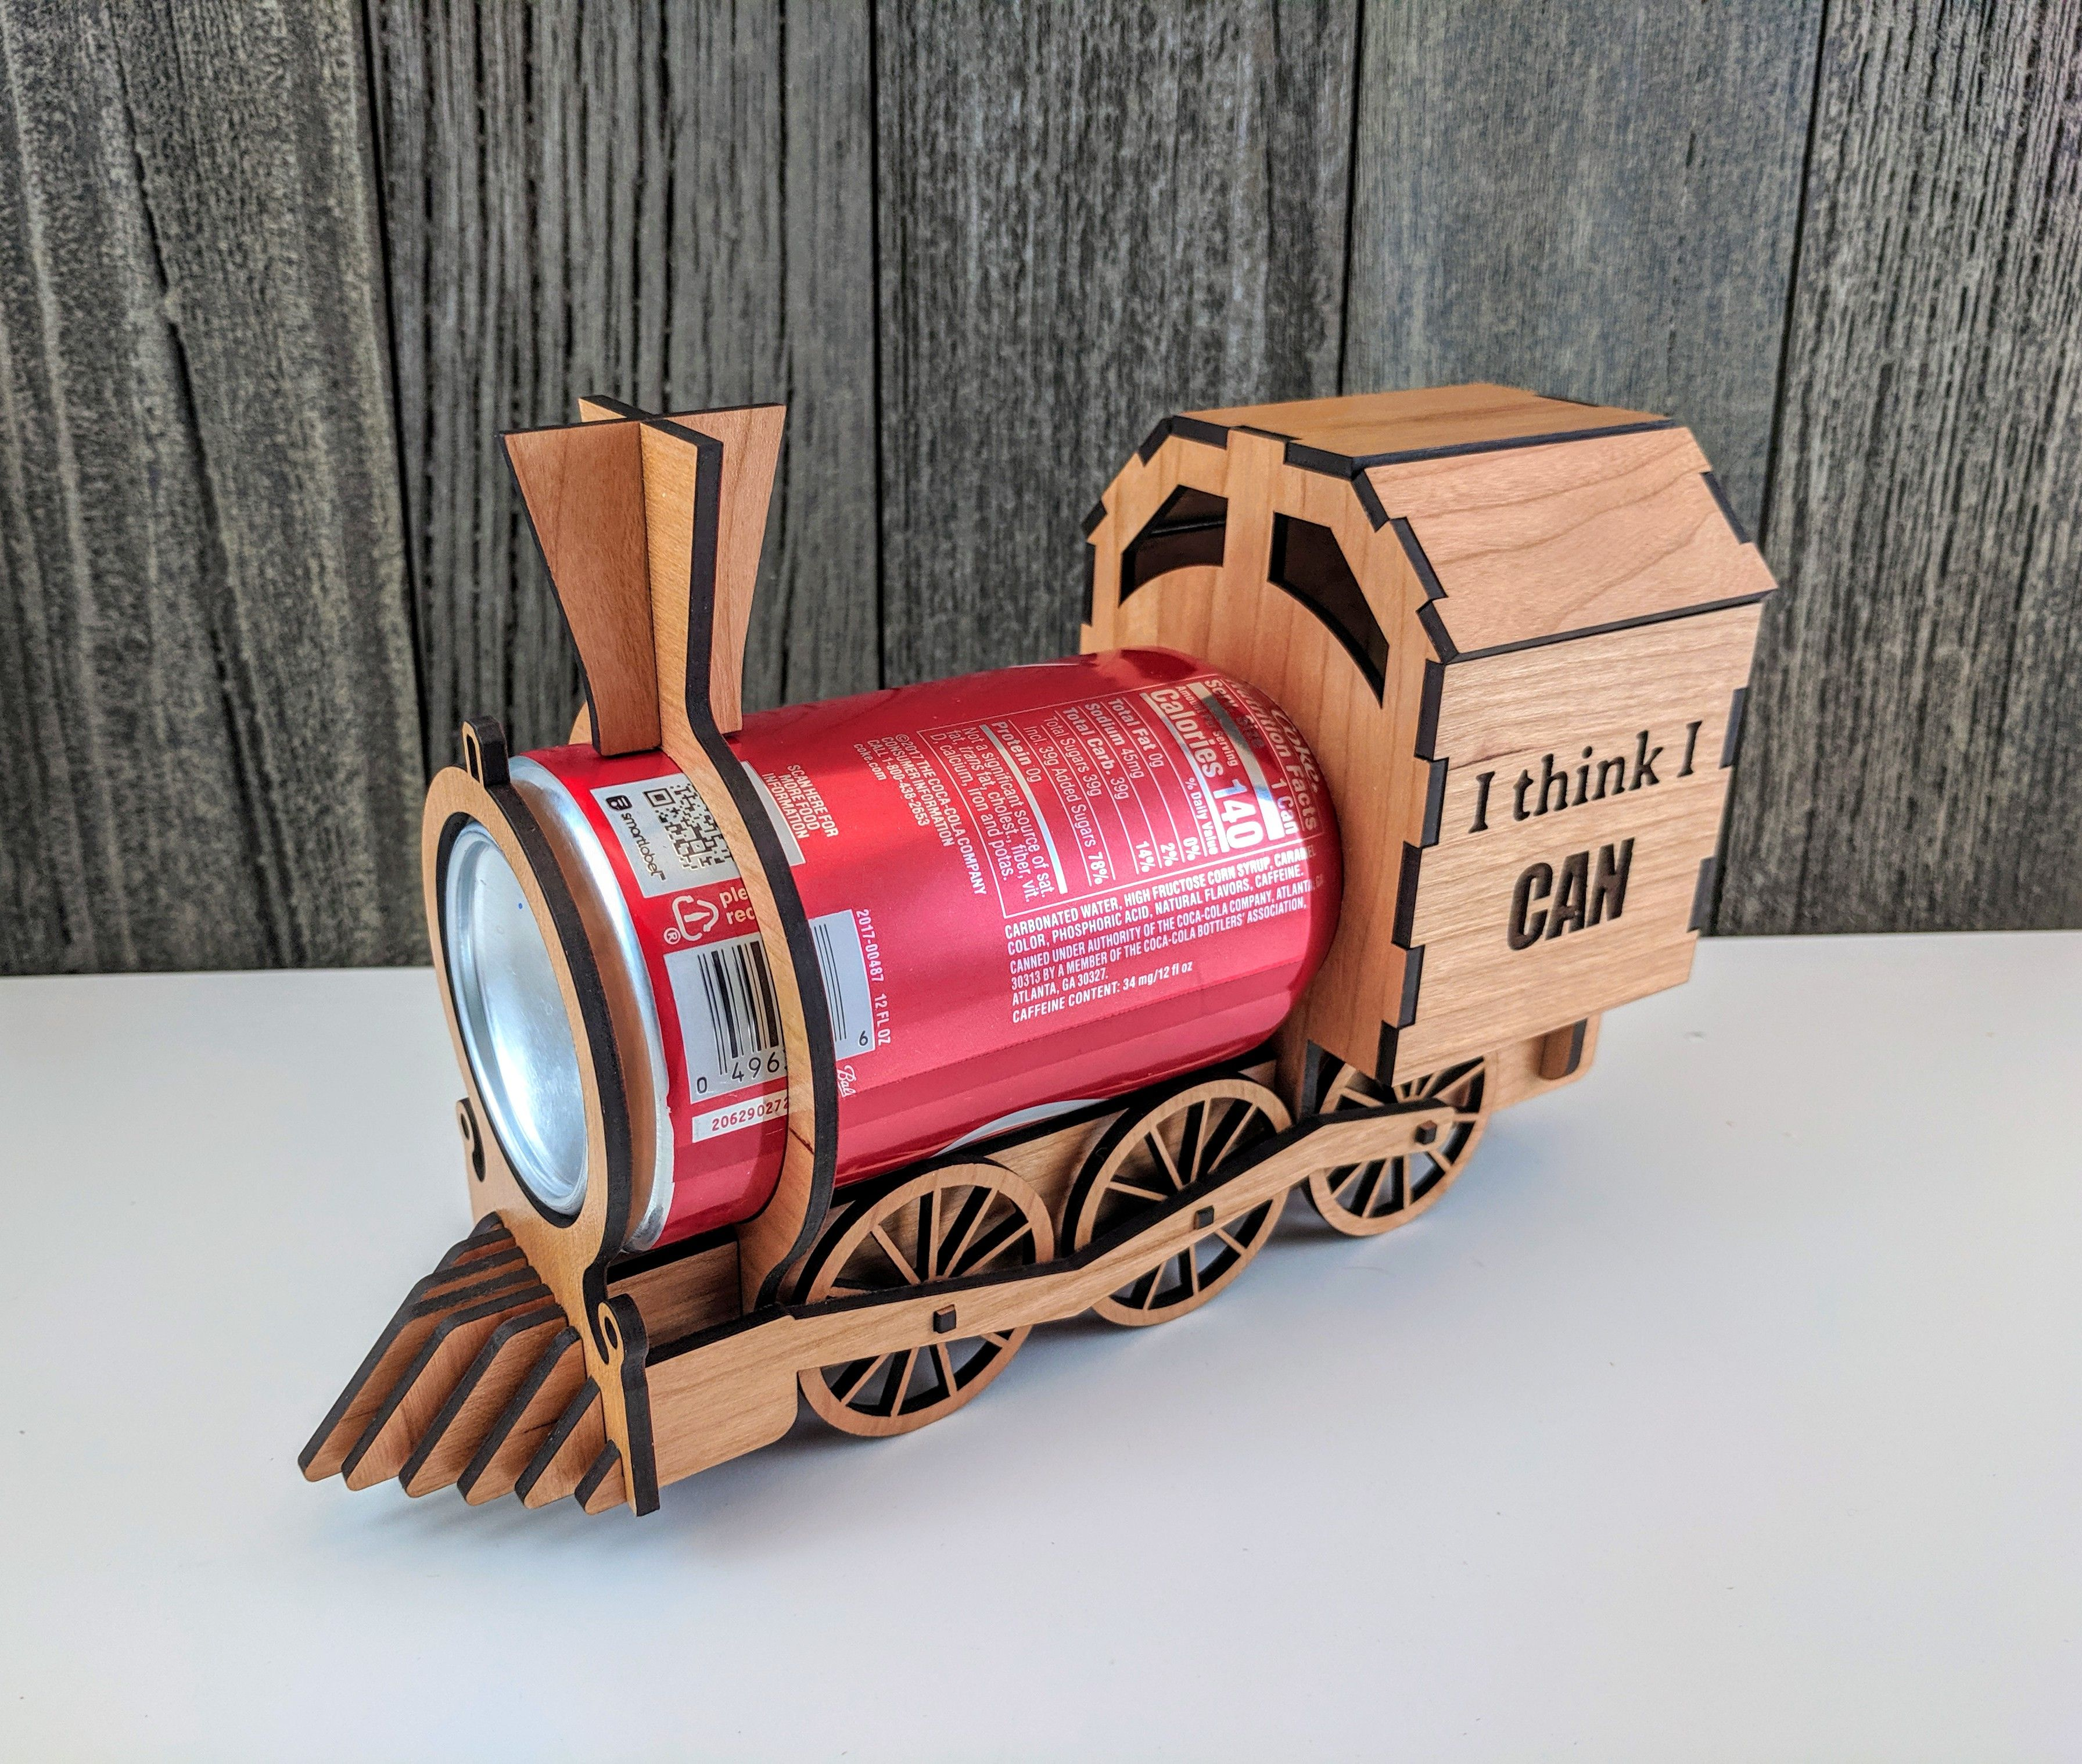 The Little Can That Can